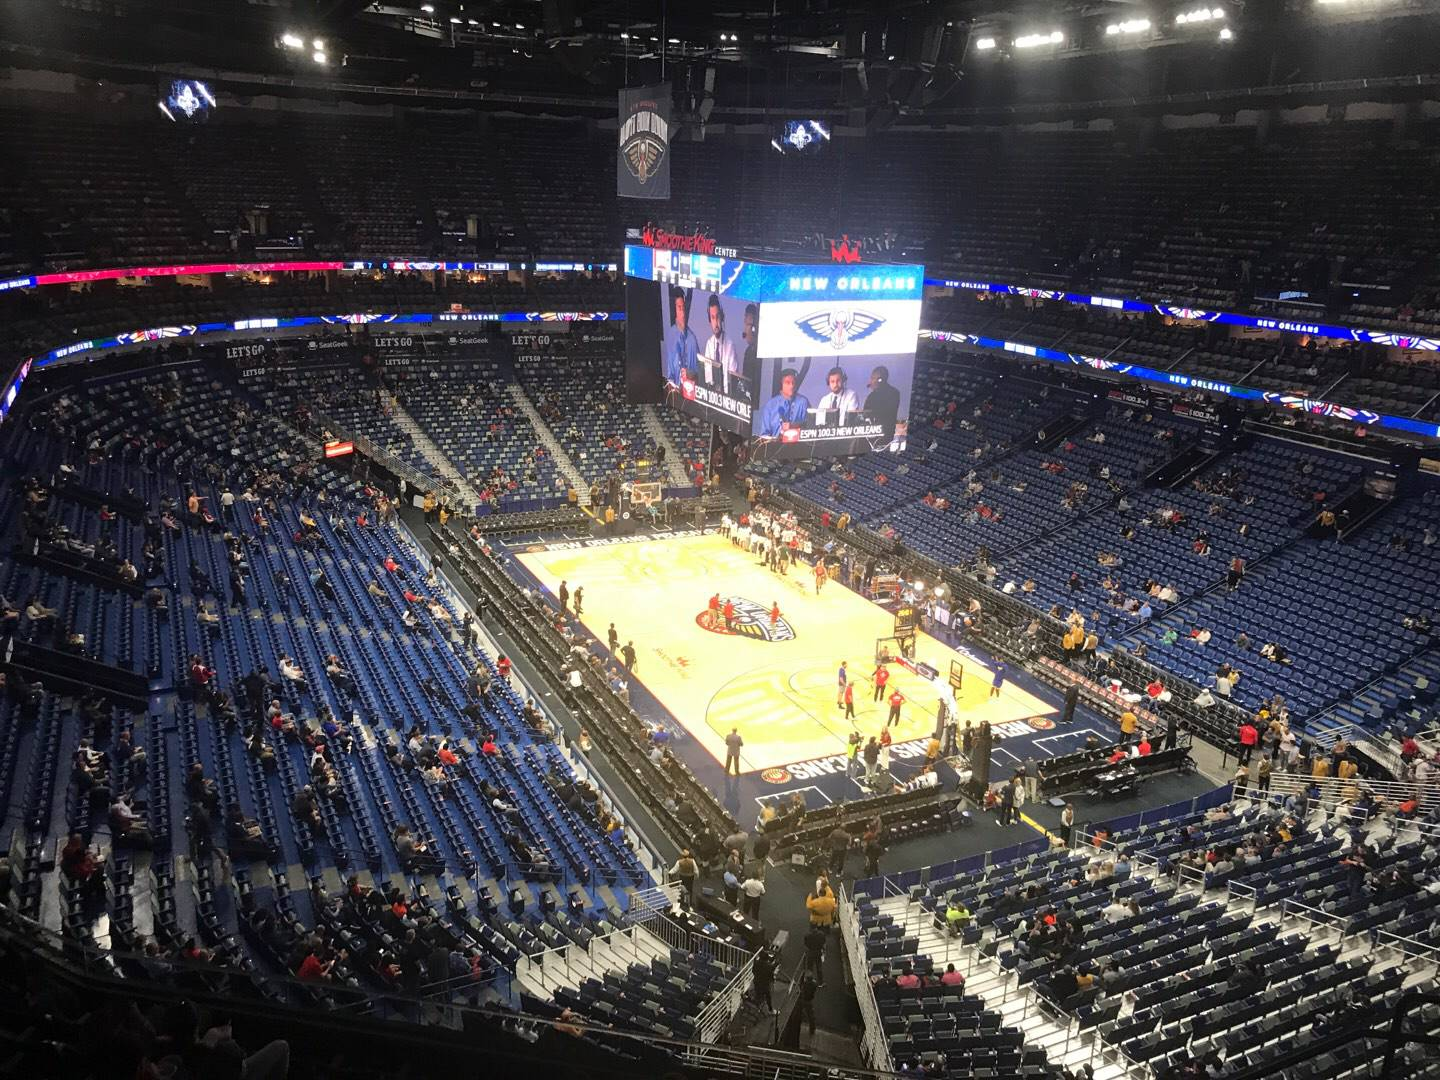 Smoothie King Center Section 327 Row 9 Seat 6